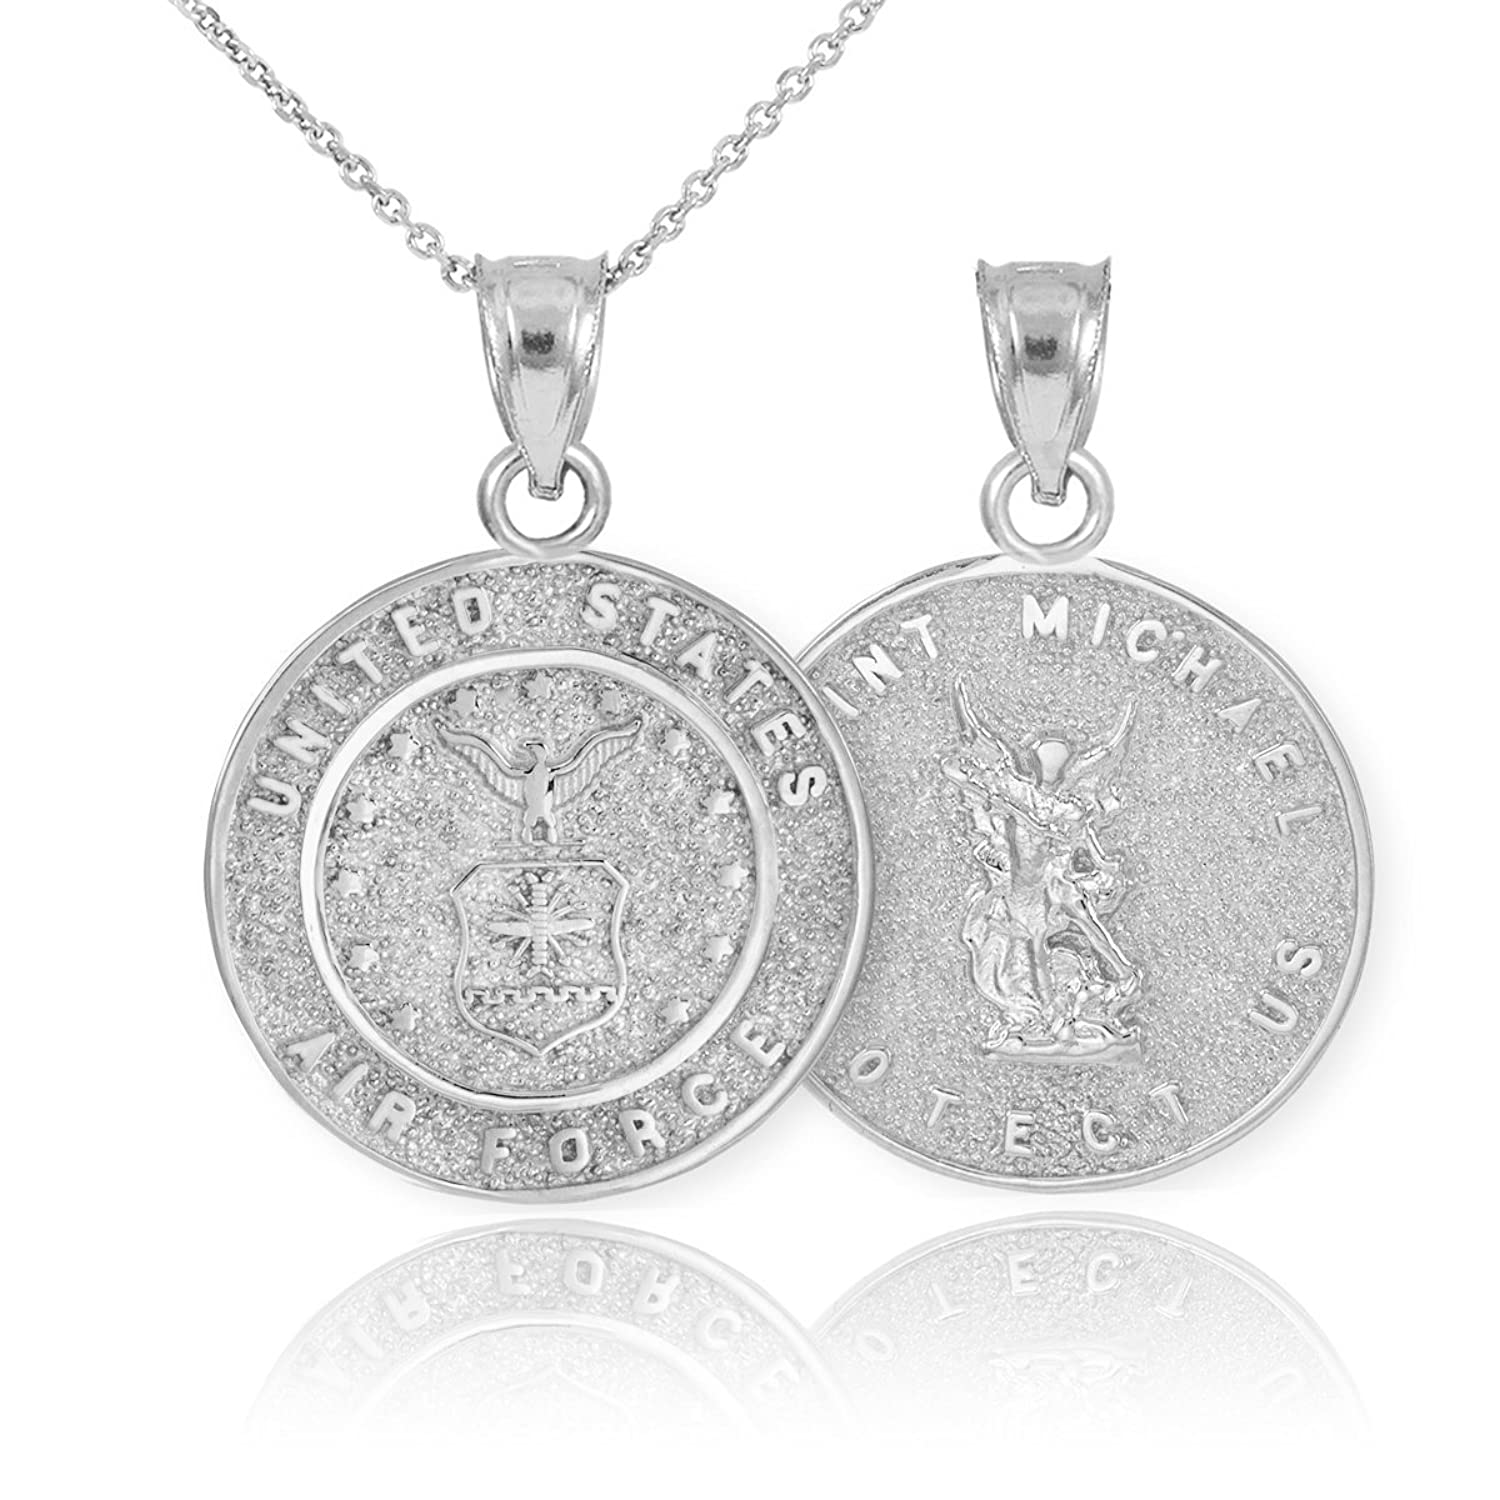 Reversible 10k White Gold St Michael Medal Protection Charm US Air Force Pendant Necklace